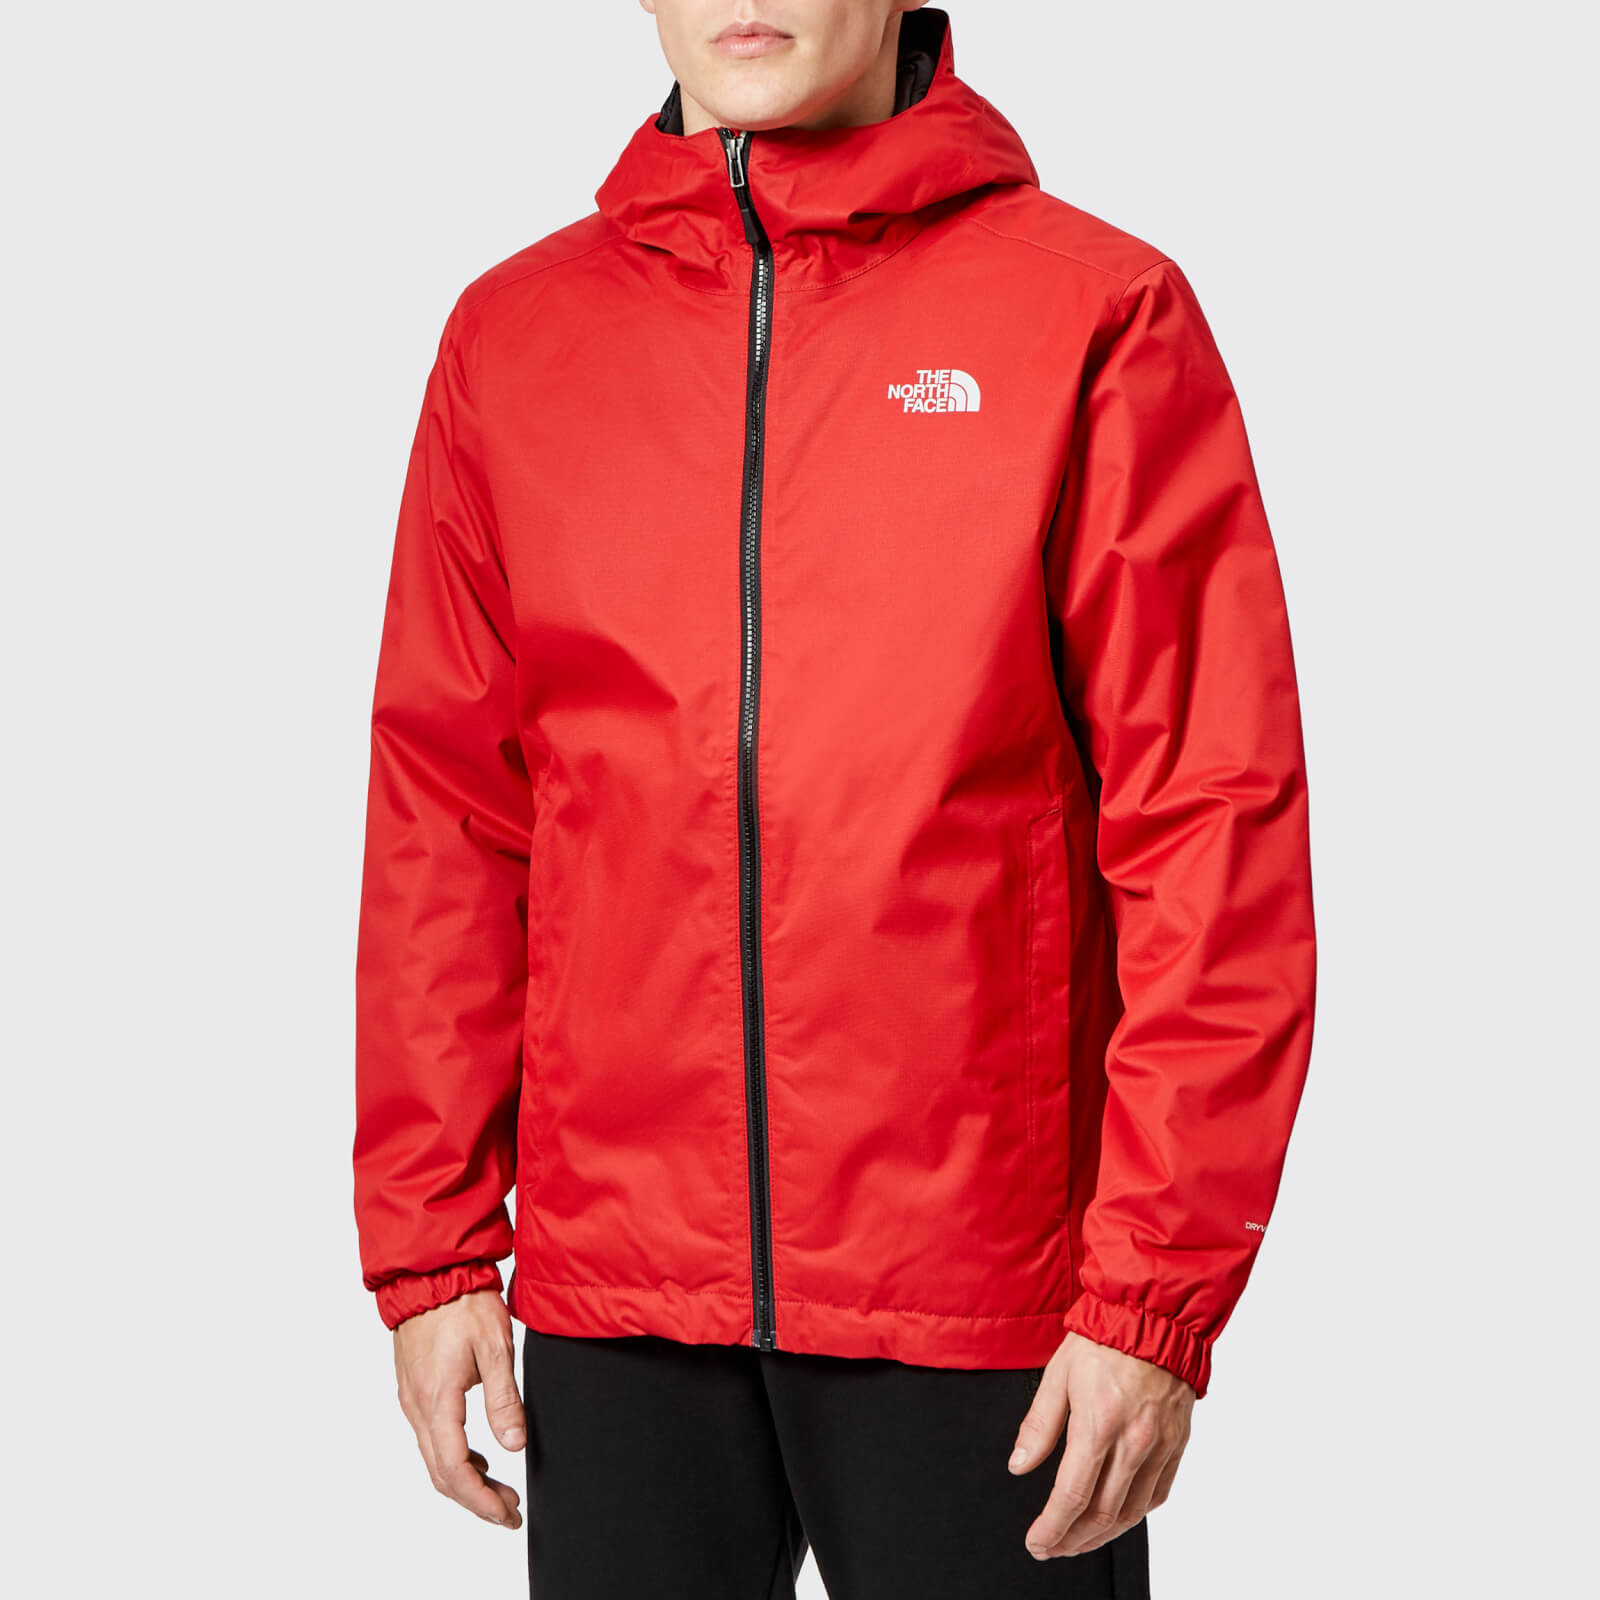 e1cf6ef84 The North Face Men's Quest Insulated Jacket - Rage Red Black Heather